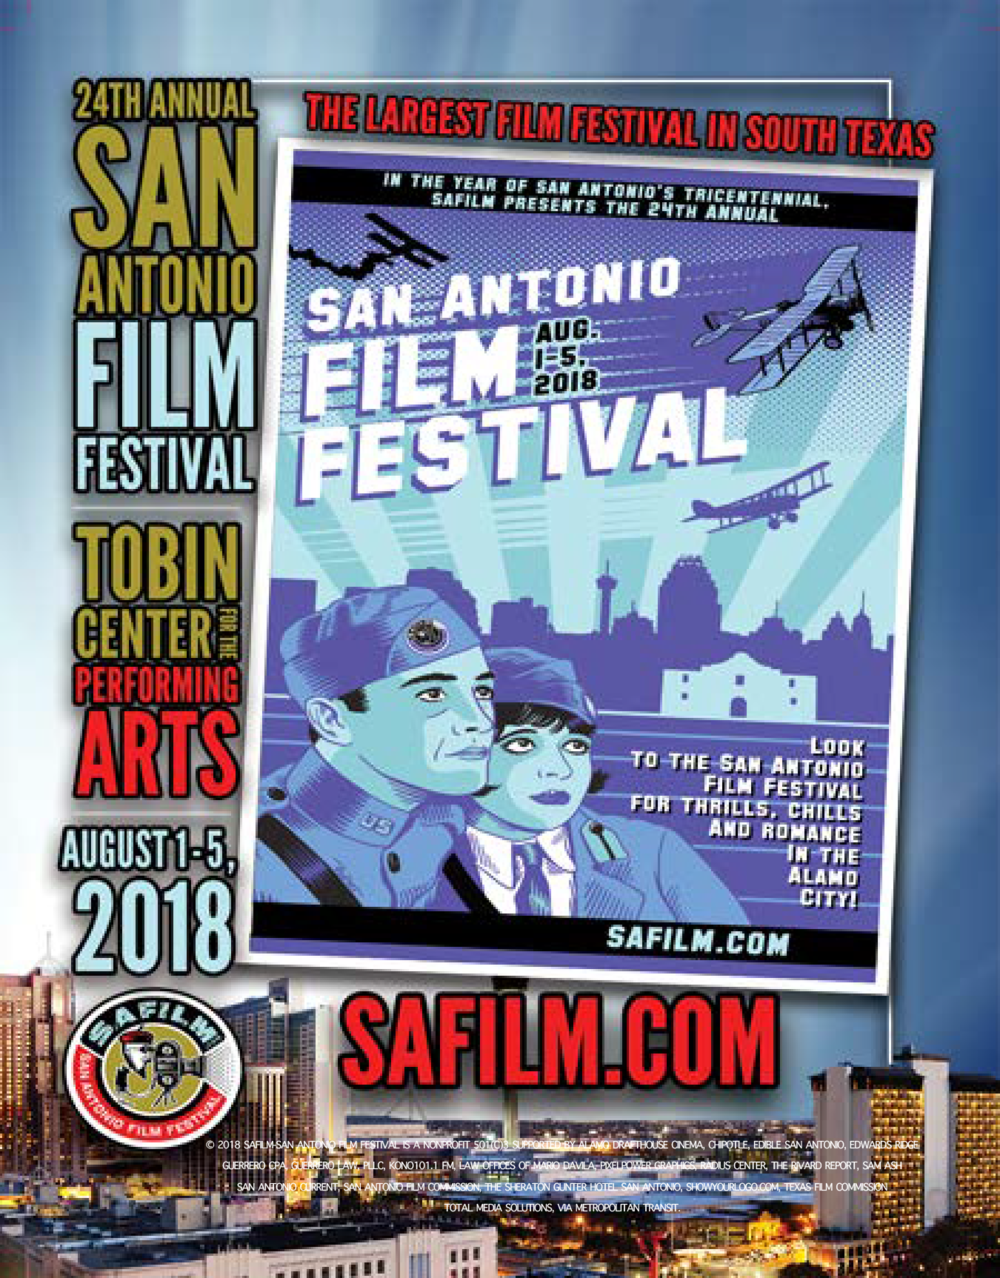 Official Selection by the 2018 San Antonio Film Festival.